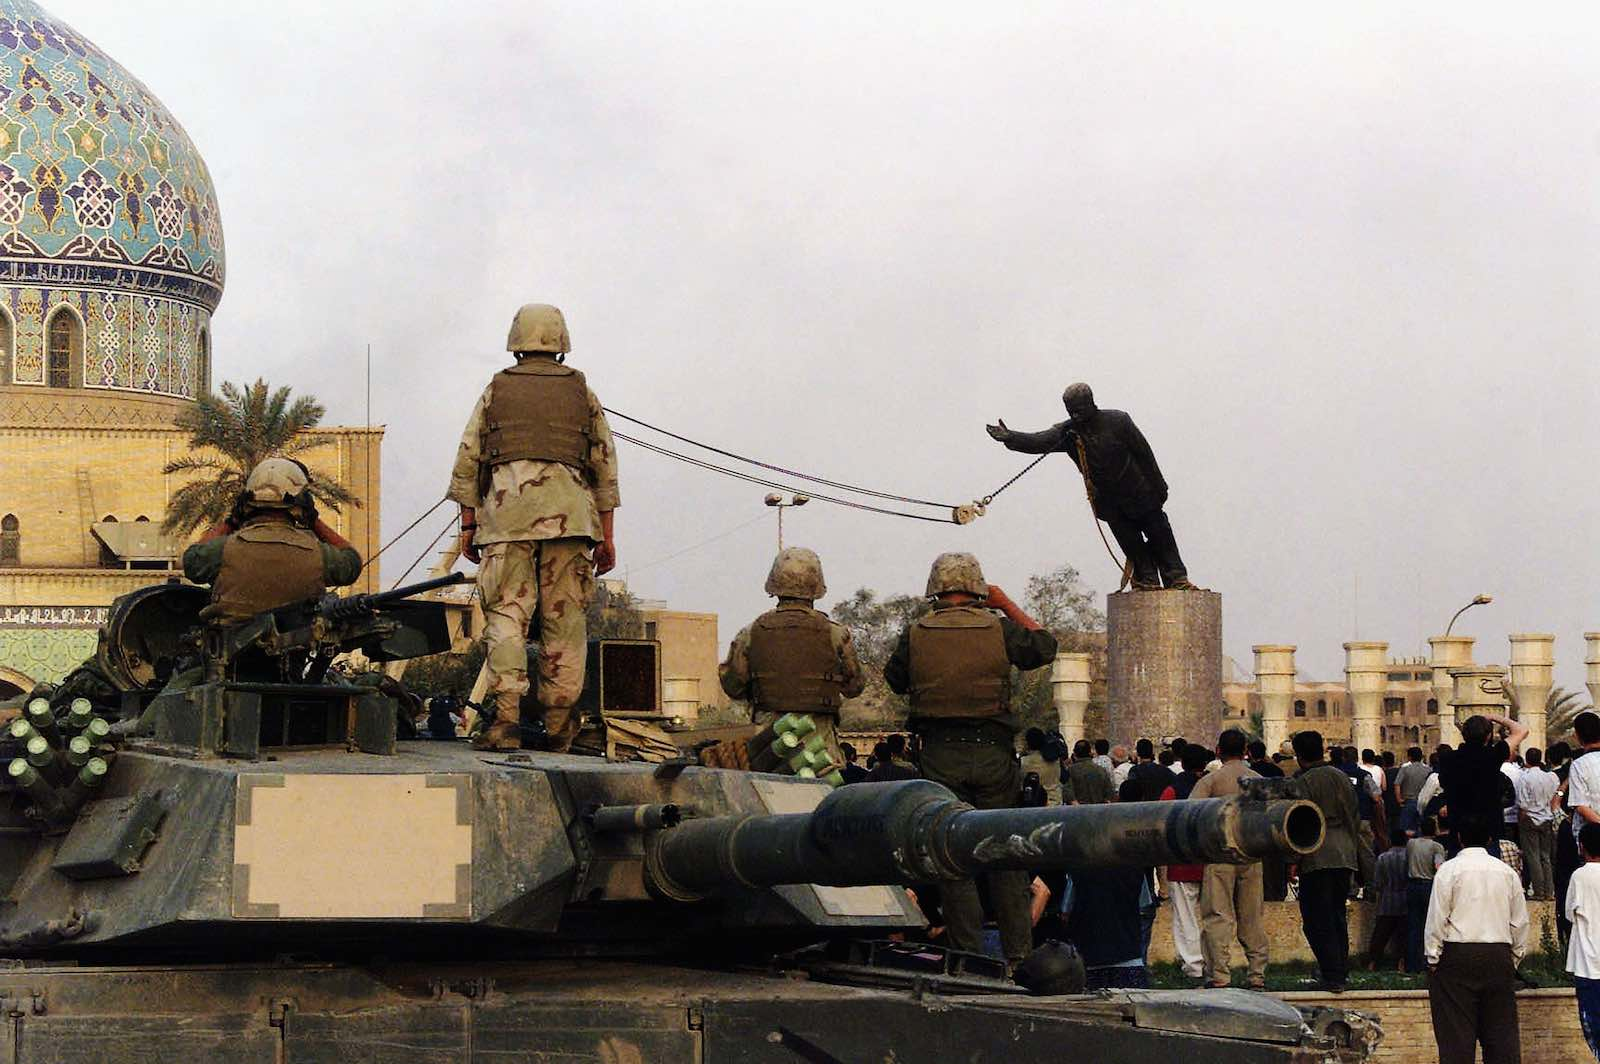 US marines and Iraqis watch the toppling of Saddam Hussein's statue in al-Fardous square in Baghdad, 9 April 2003 (Wathiq Khuzaie /Getty Images)